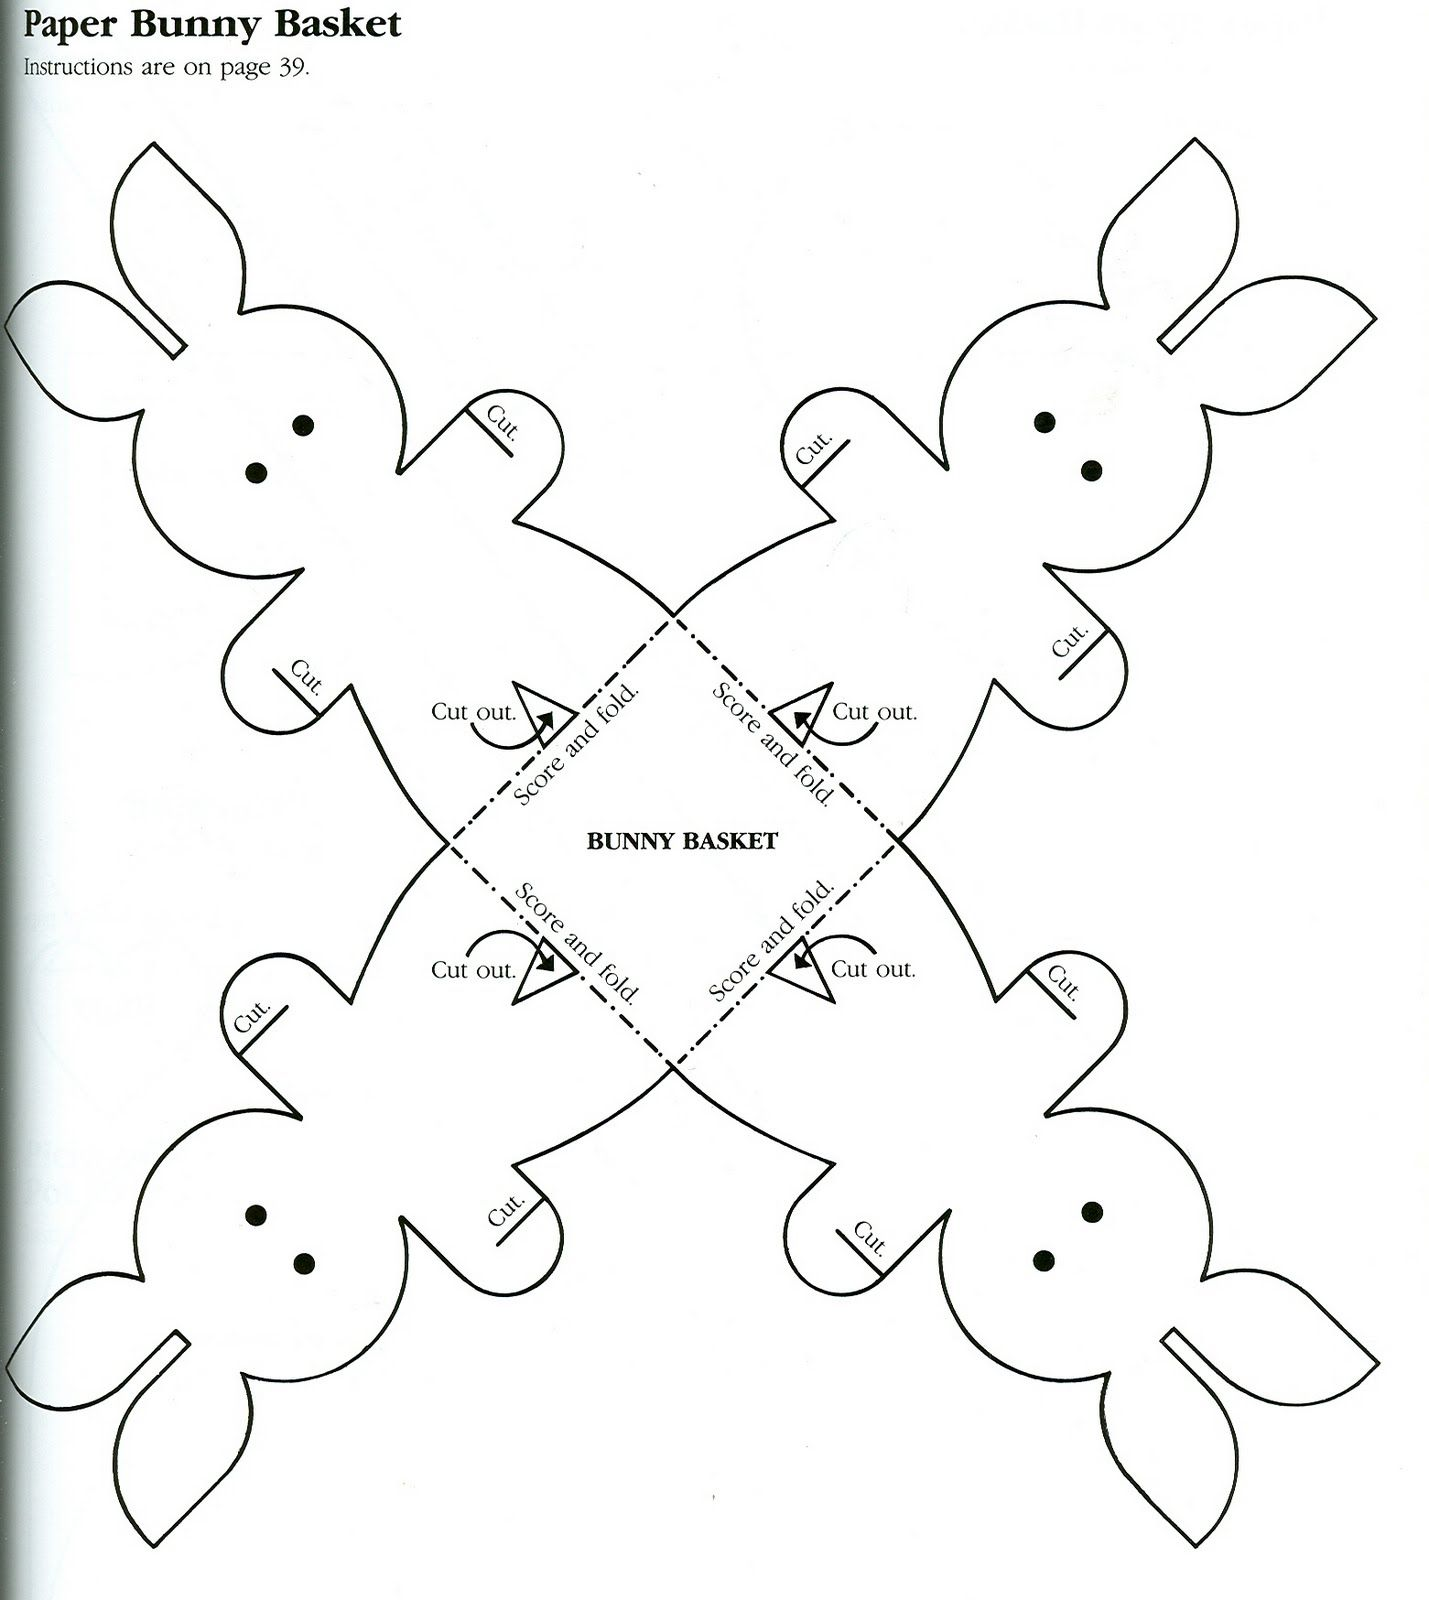 Tekspotlight documents easter bunny templates for kids projects tekspotlight documents easter bunny templates for kids pronofoot35fo Image collections